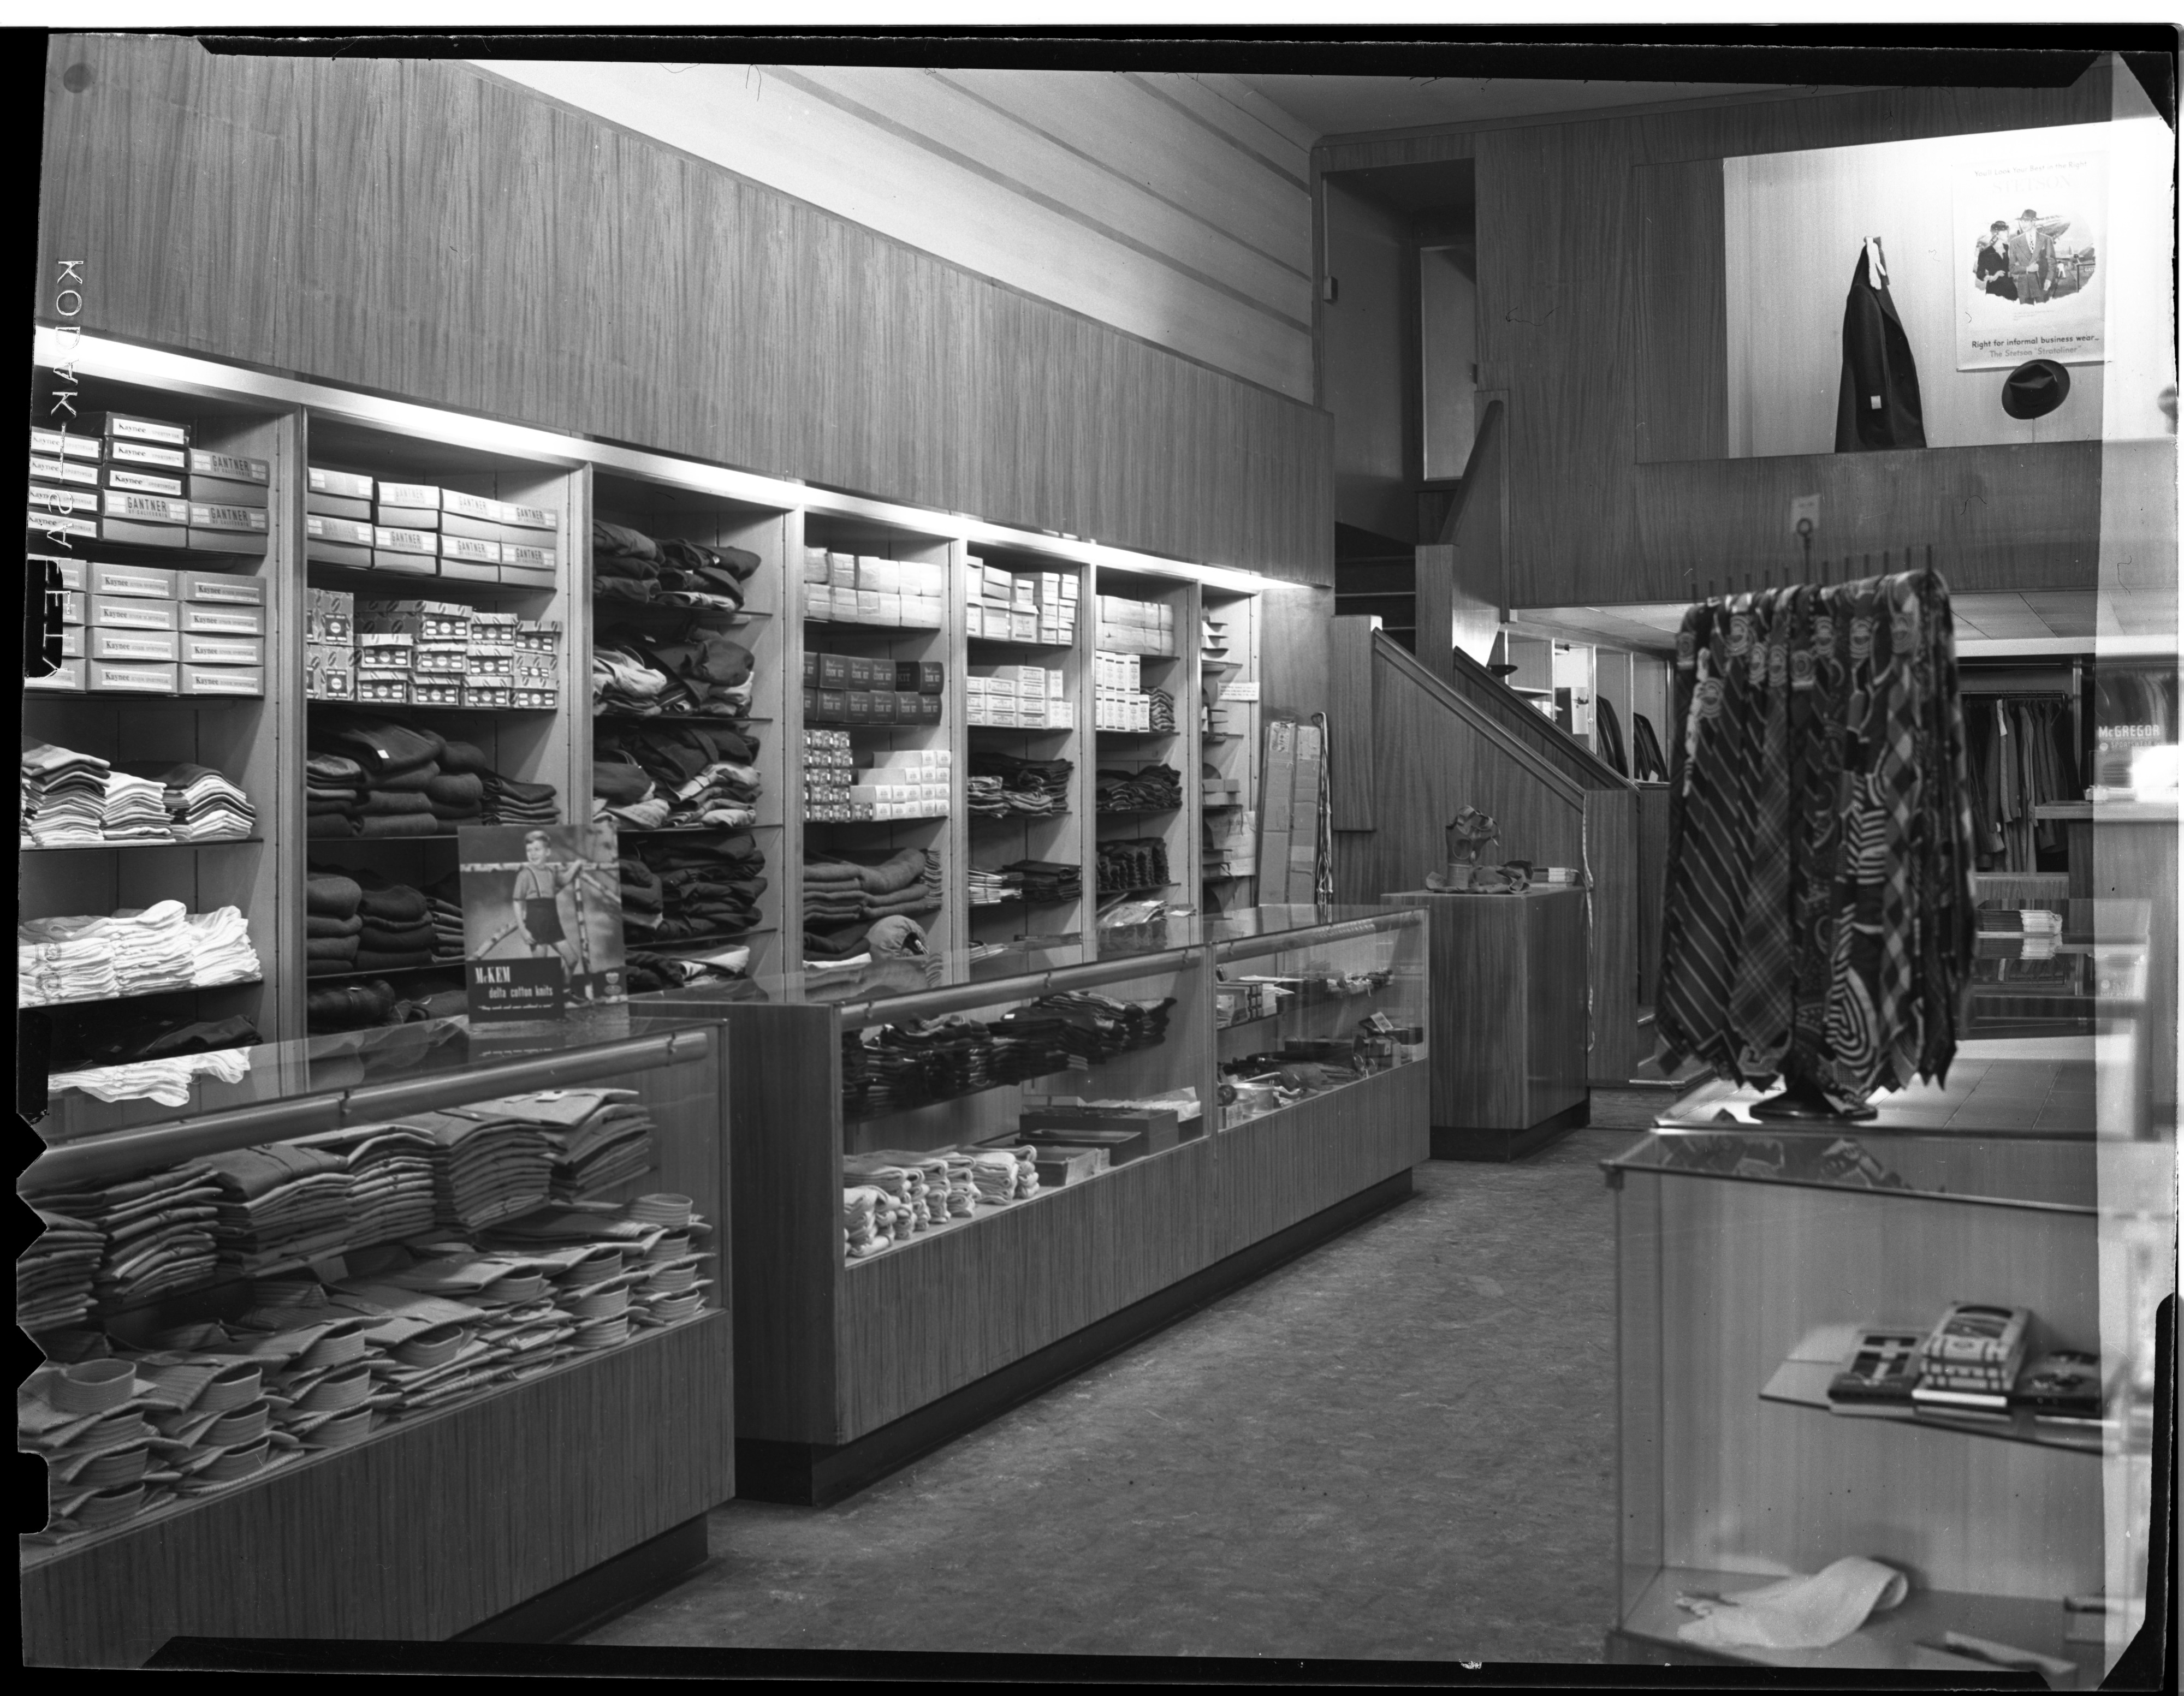 Fiegel's Clothing Store, March 1946 image